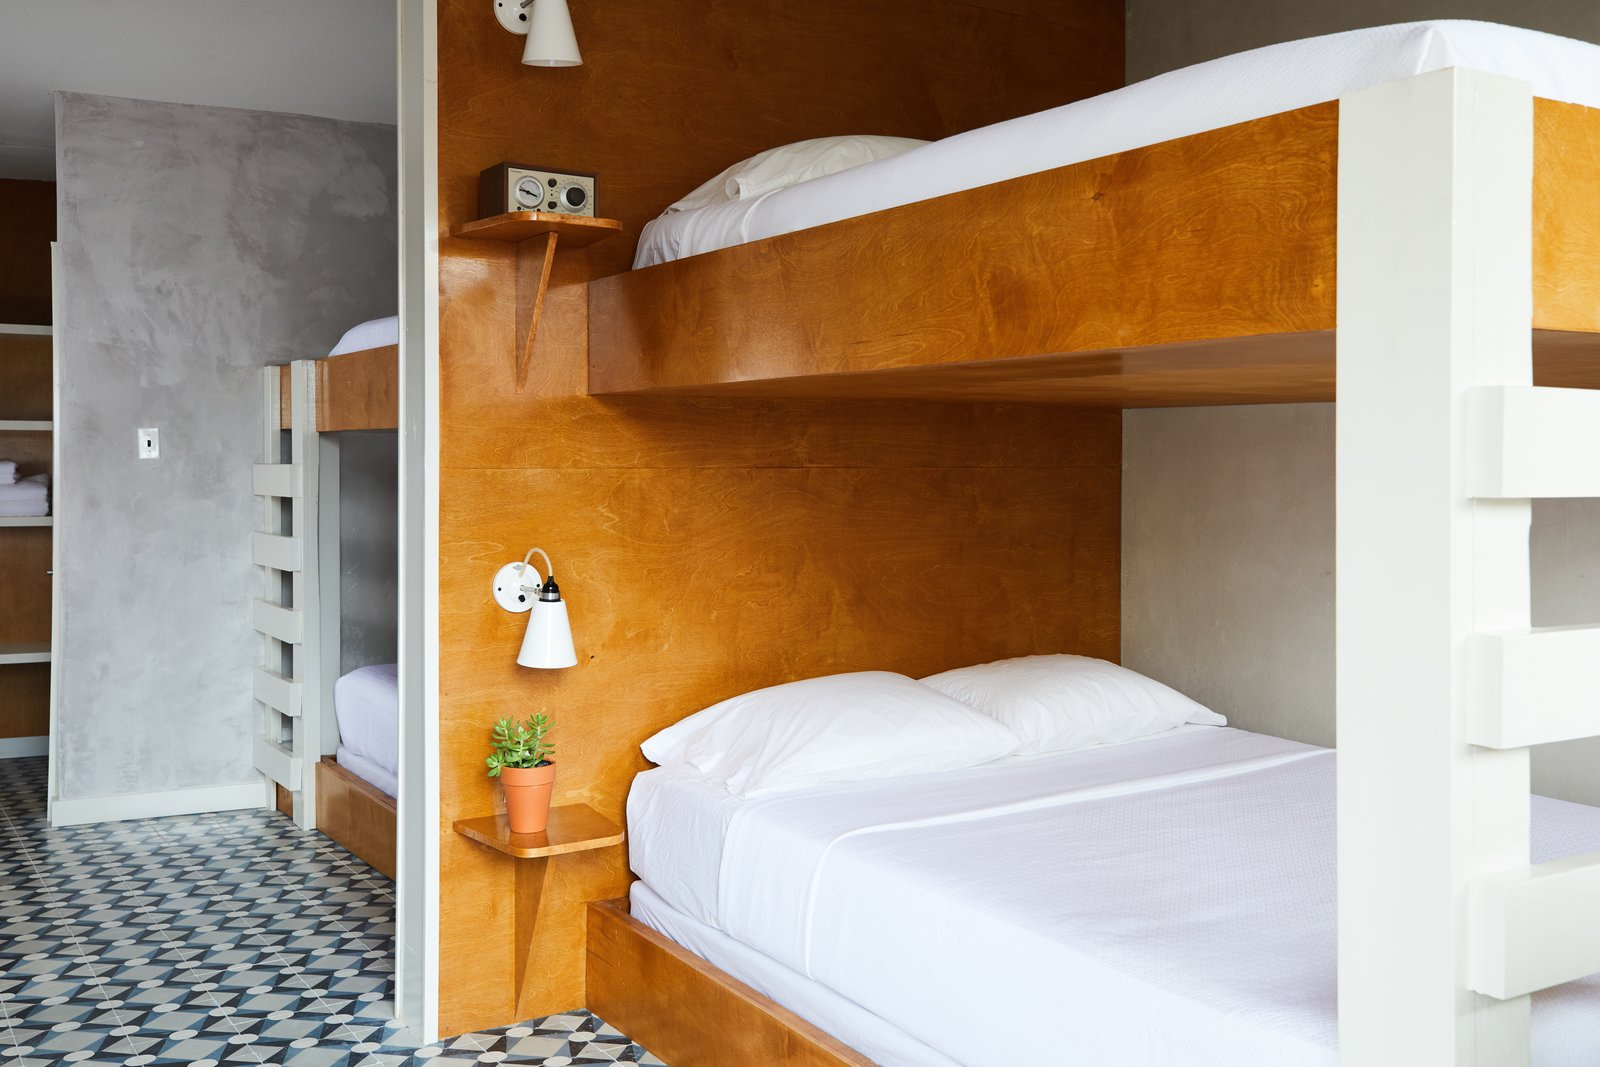 Bedroom, Bunks, Night Stands, Wall, and Ceramic Tile The Bunk Room, located on the first floor, has direct pool access.  Custom built in bunk beds provide the perfect accommodations for a group of friends.  Bedroom Wall Ceramic Tile Photos from This Revived New Orleans Motel Has Some Serious Flair